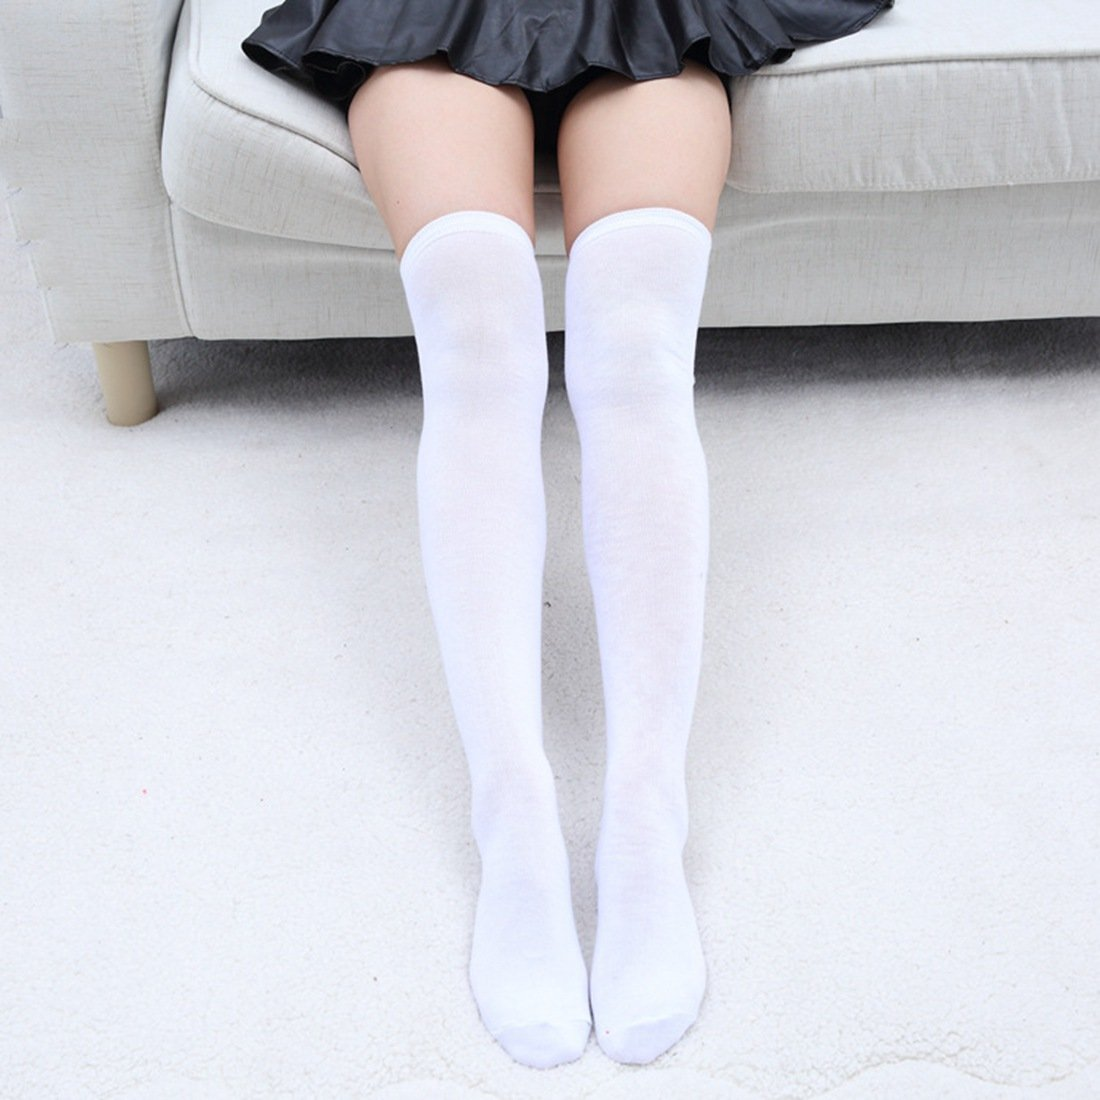 Neaer Winter Warm Thick Striped Cotton Stockings Thigh High Womens Girls Lady Long Stocking Over Knee For College Student